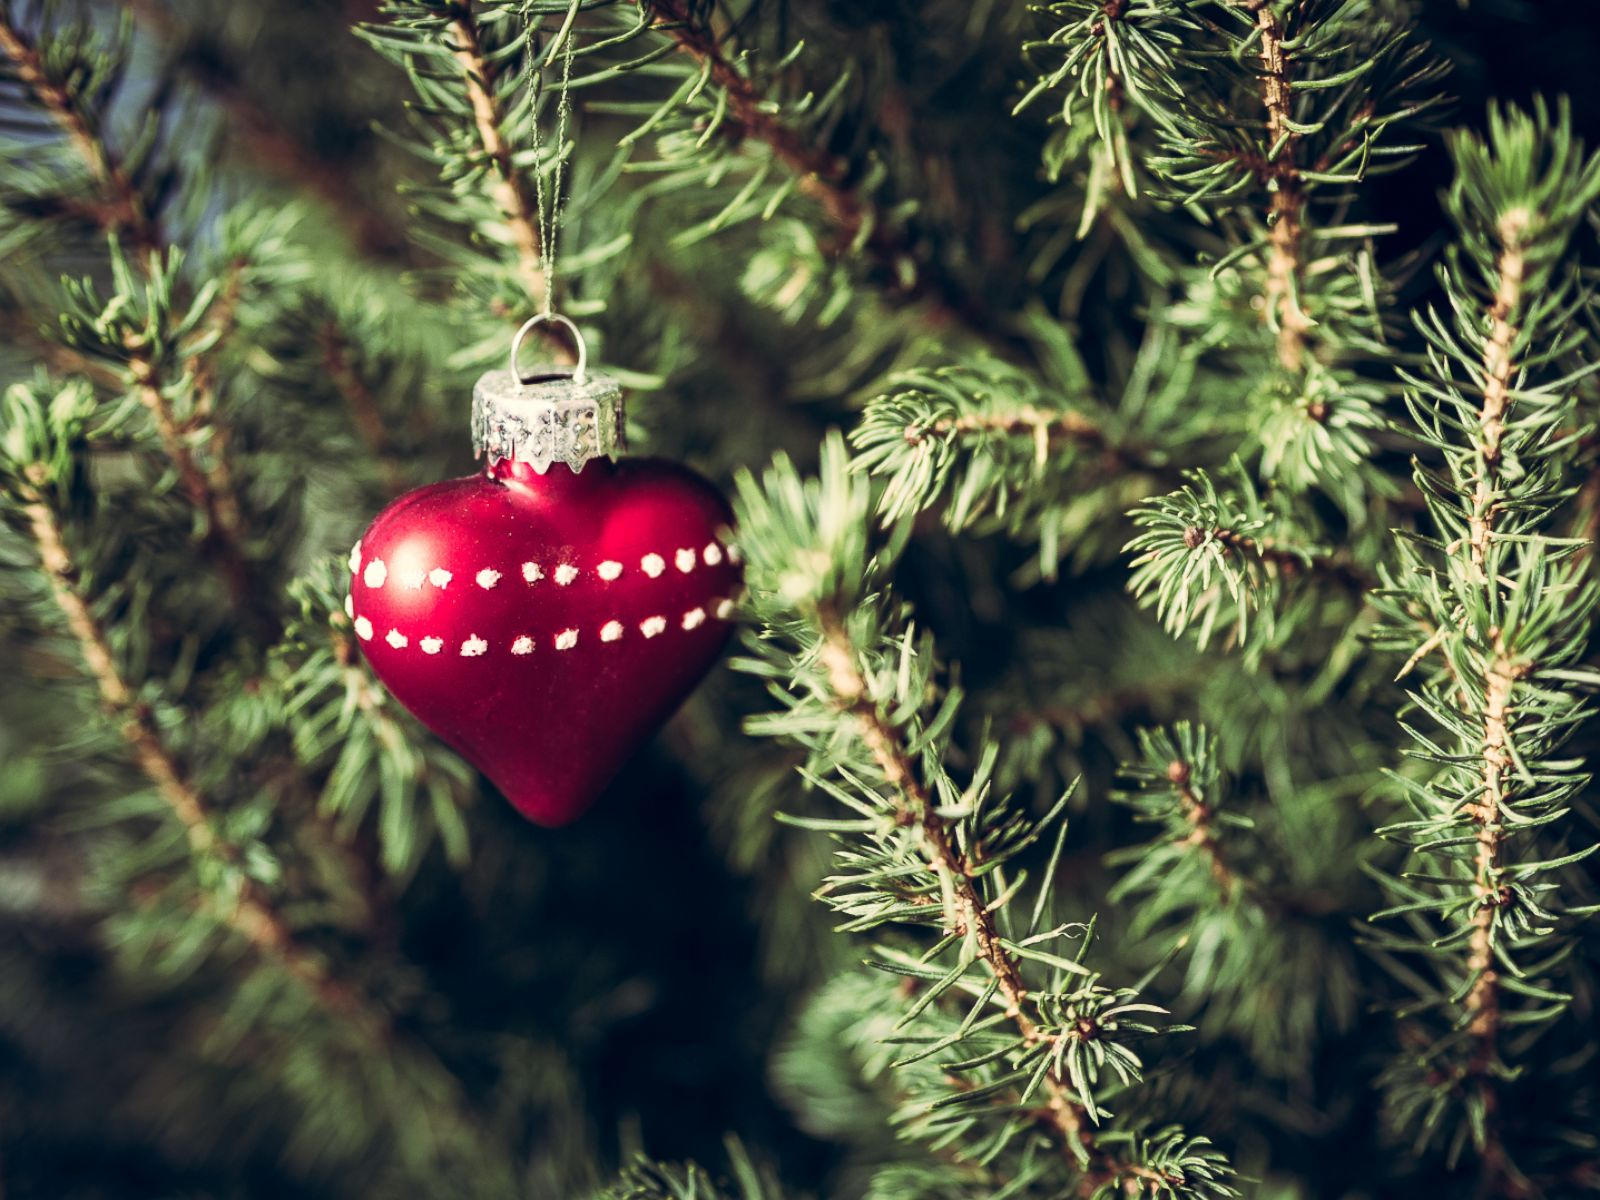 Christmas Heart.The Risk Of Heart Attack Peaks On Christmas Eve According